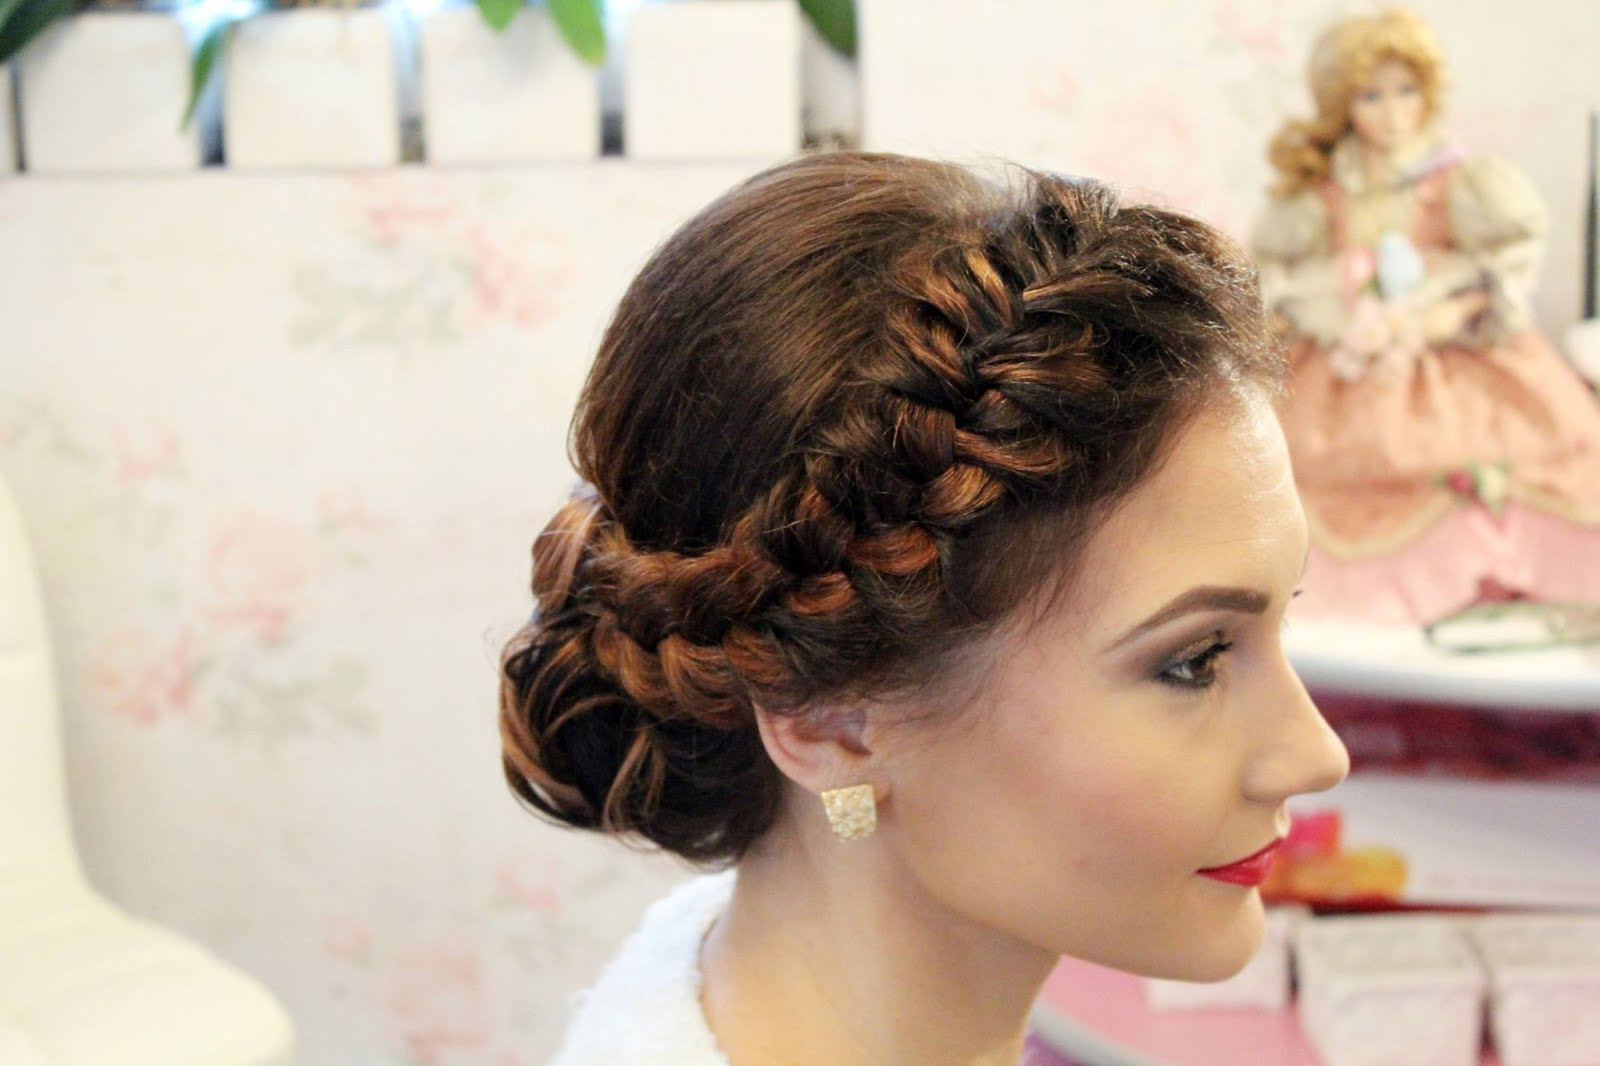 Hair Style Videos Youtube: Beautiful Hairstyles By Lucy Style, Romania!